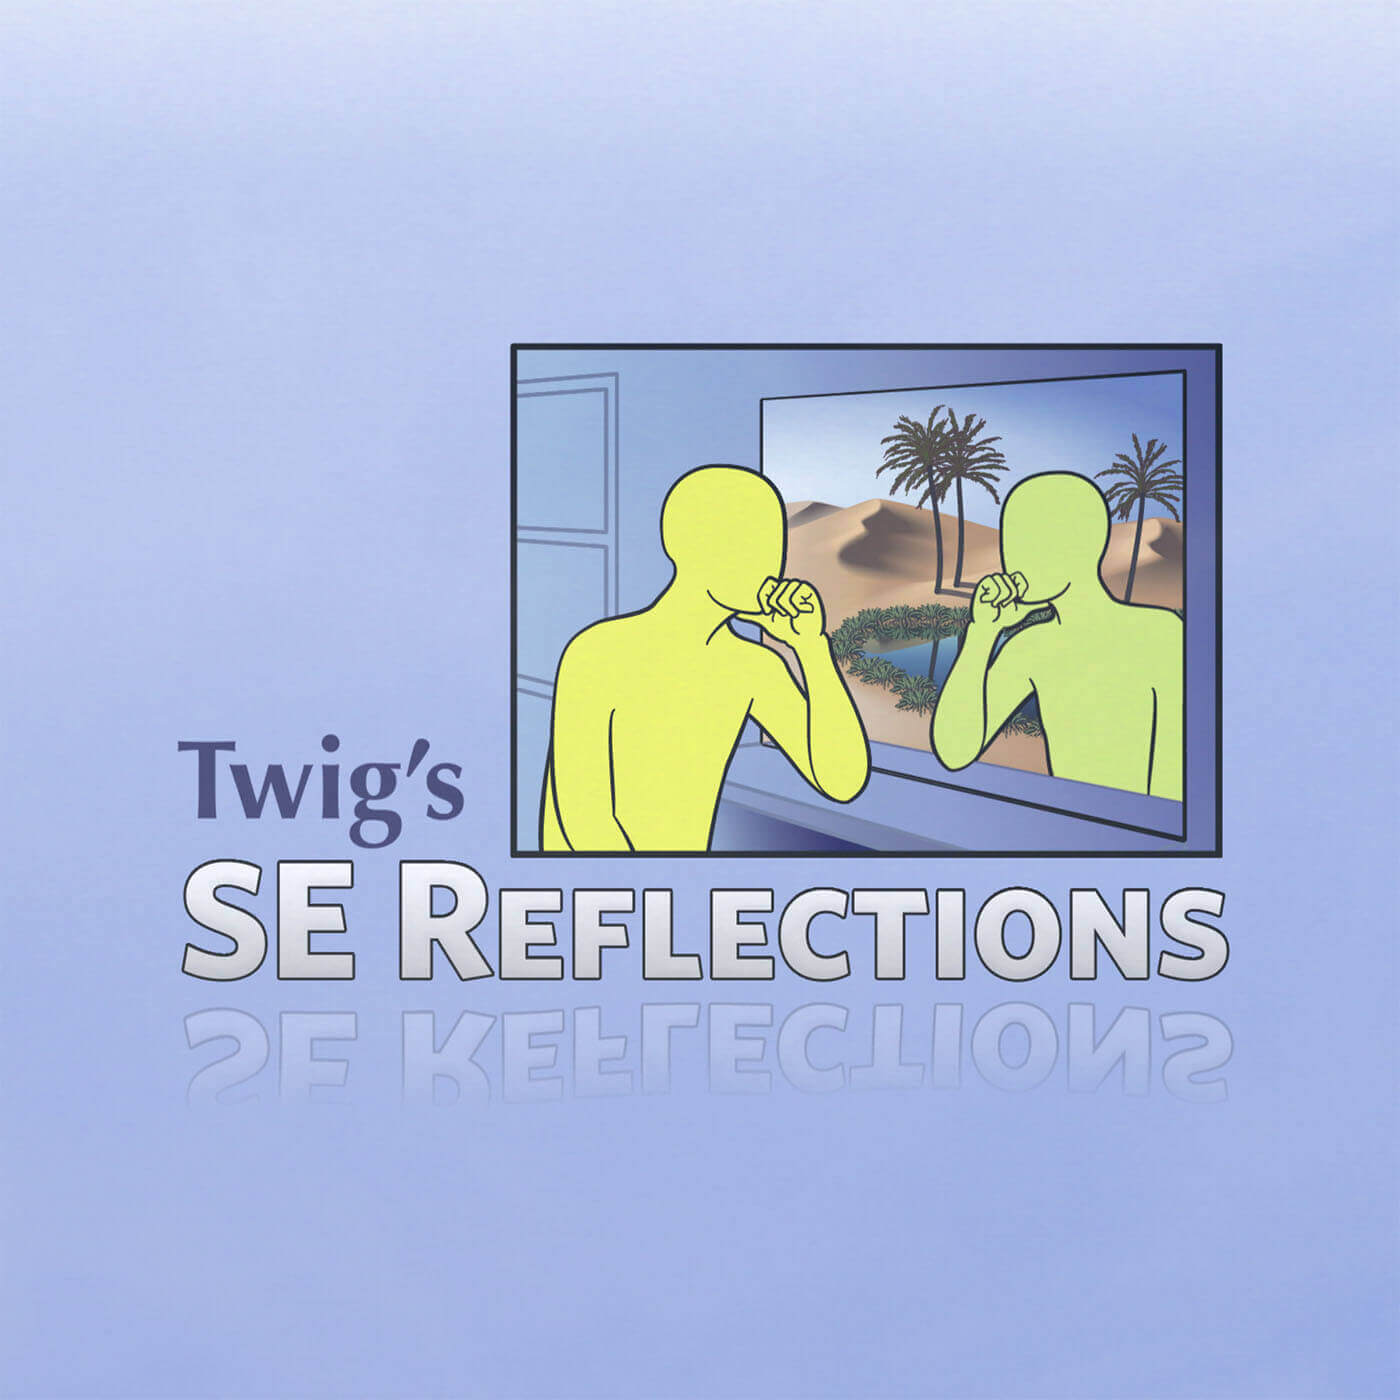 Twig's SE Reflections